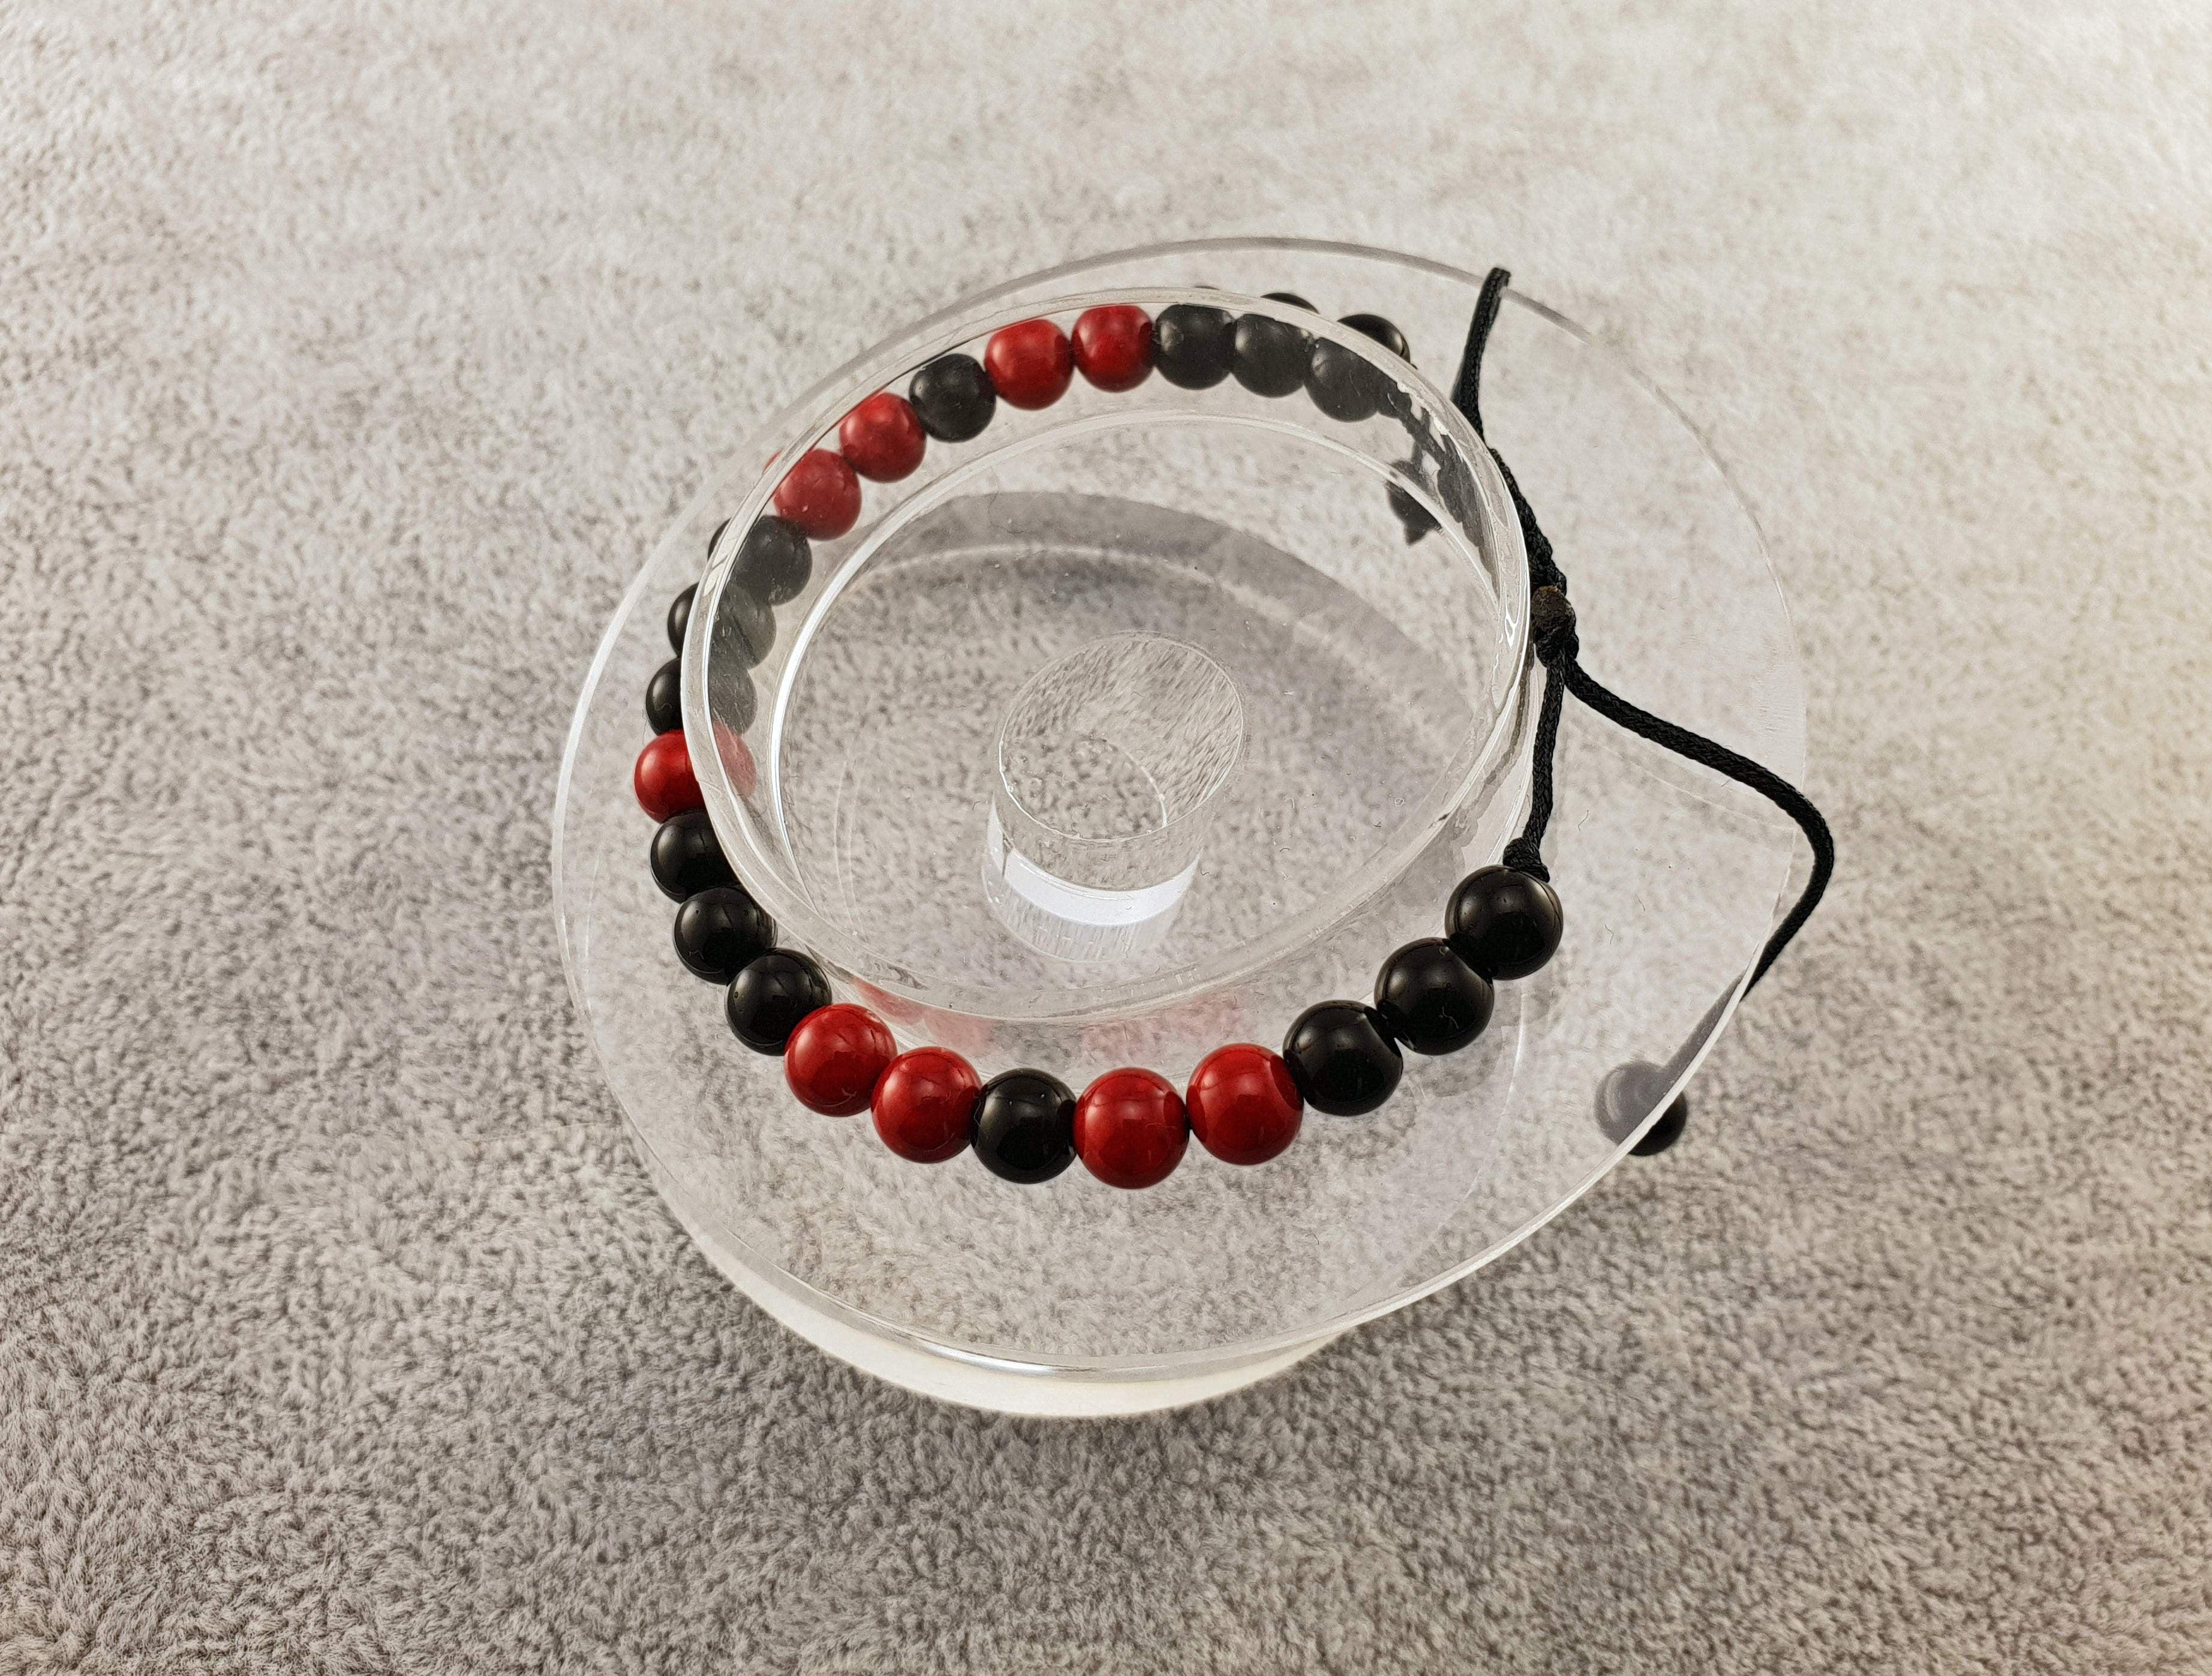 Agate beads - Black and Red - By Janine Jewellery